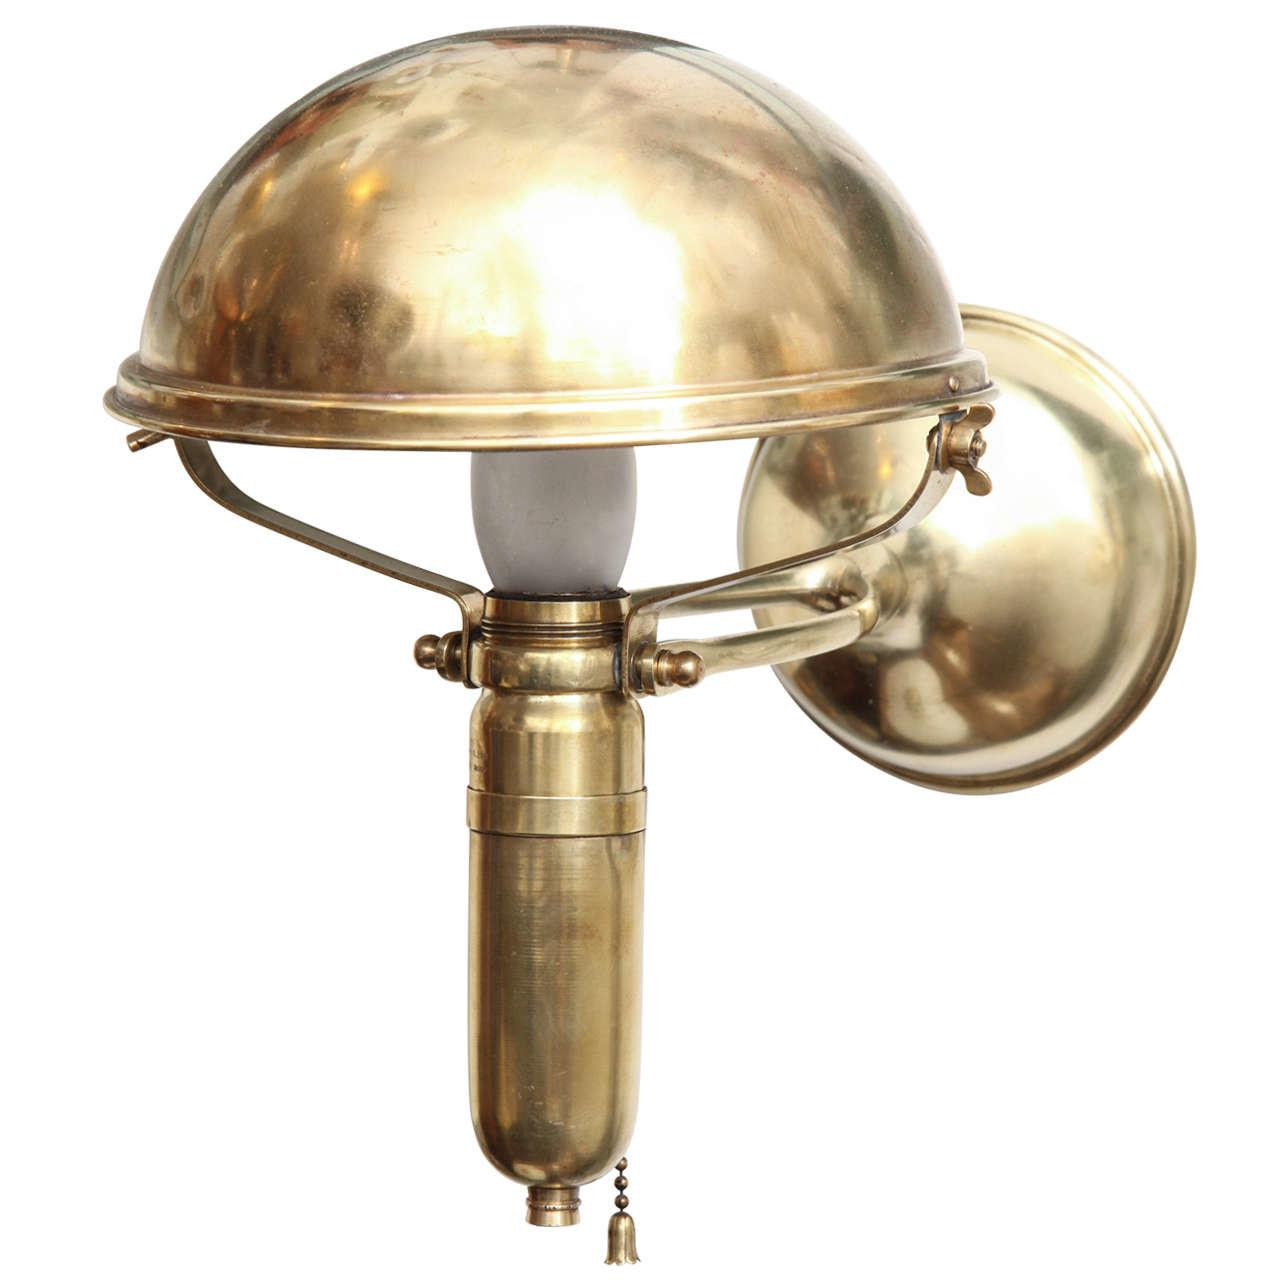 Brass Ships Wall Fixture Table Lamp Signed Weber 1909